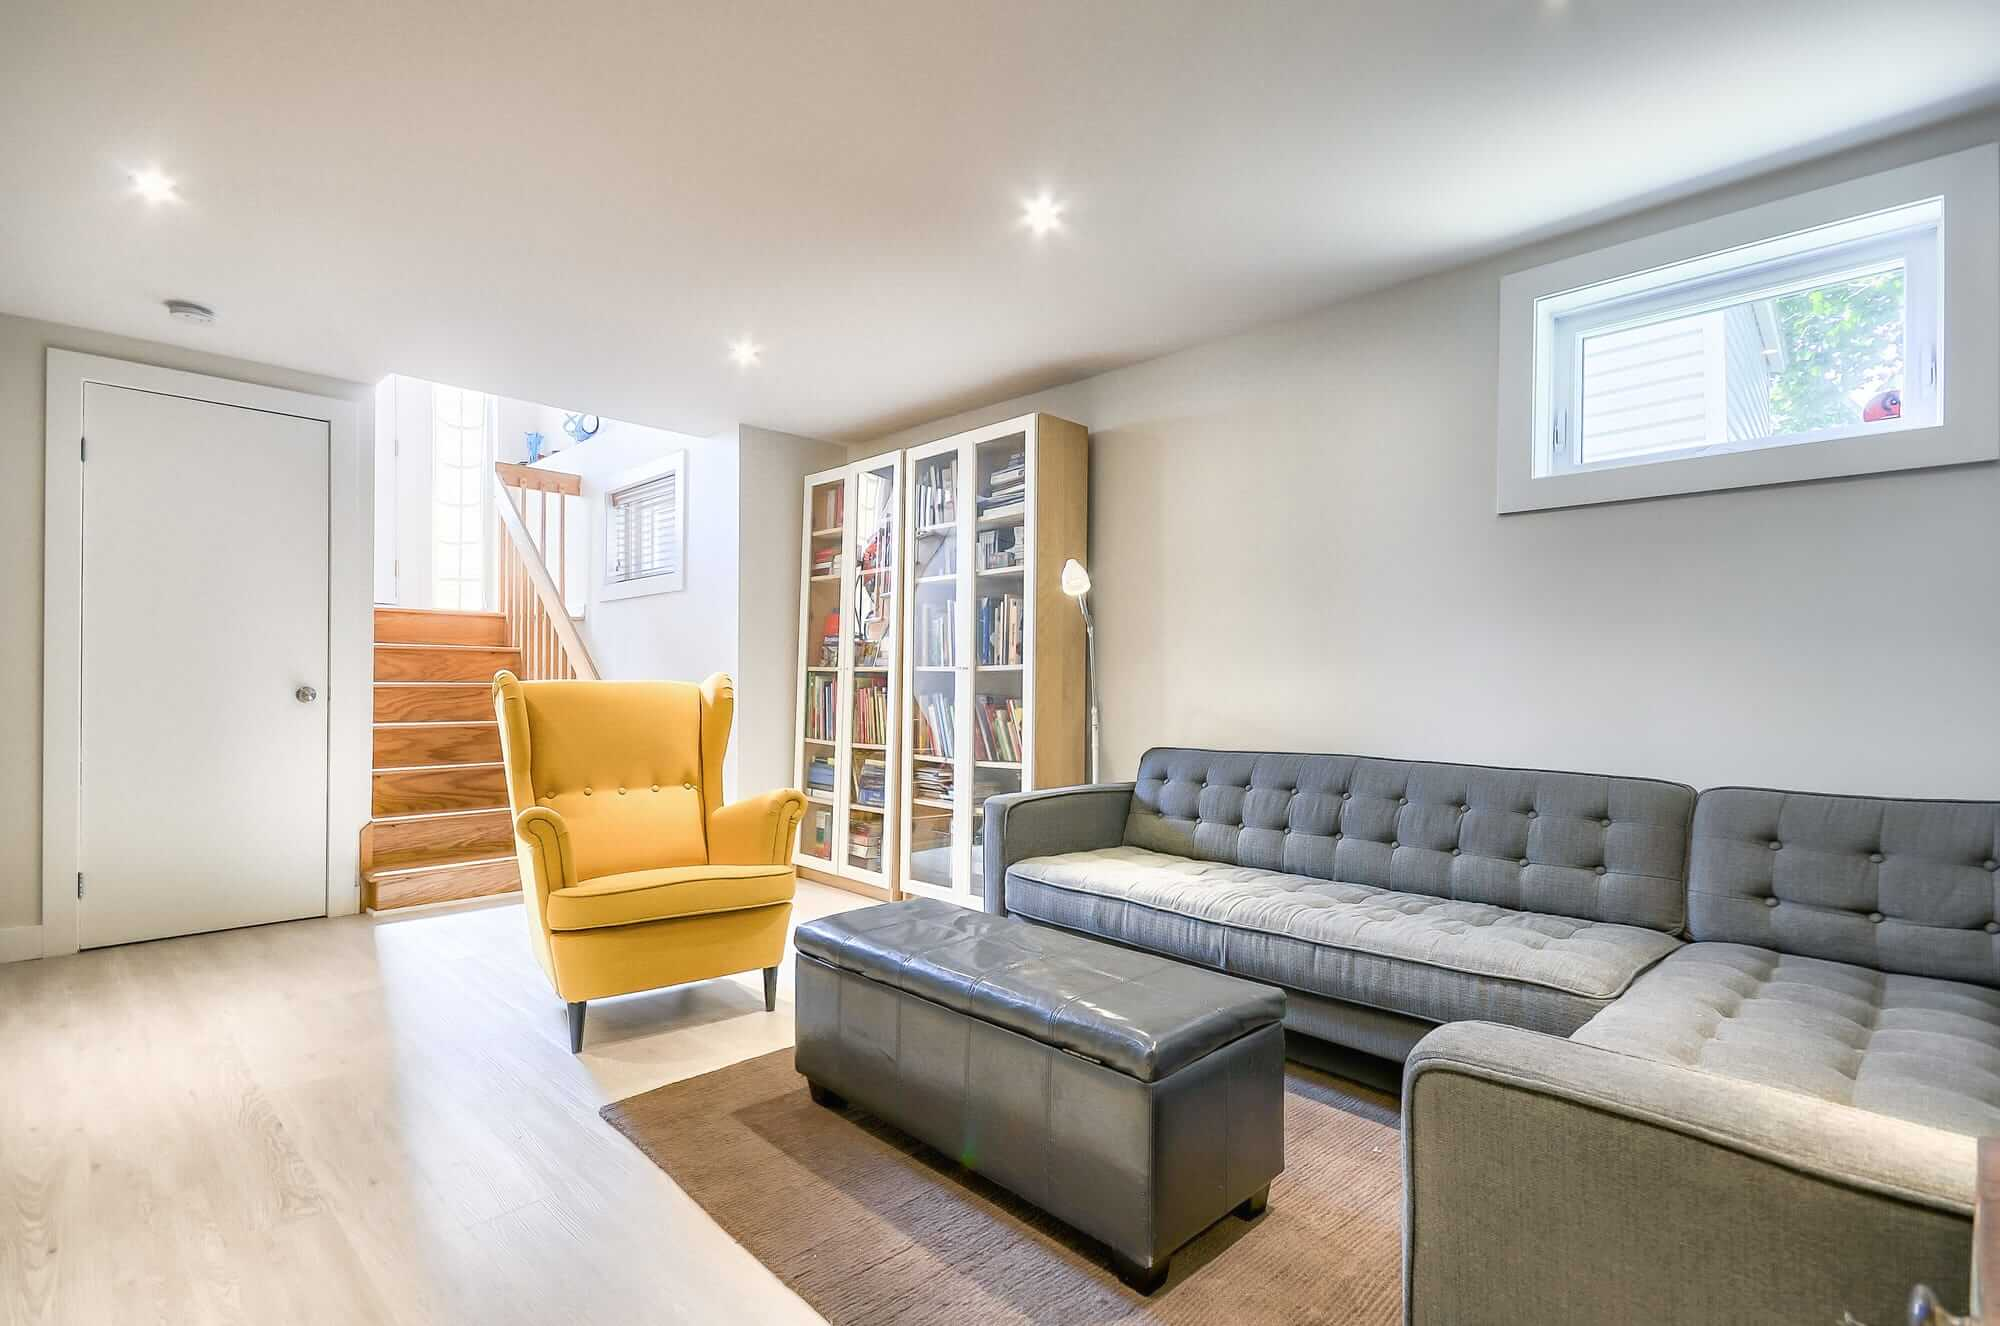 basement living room with a yellow armchair and a grey couch